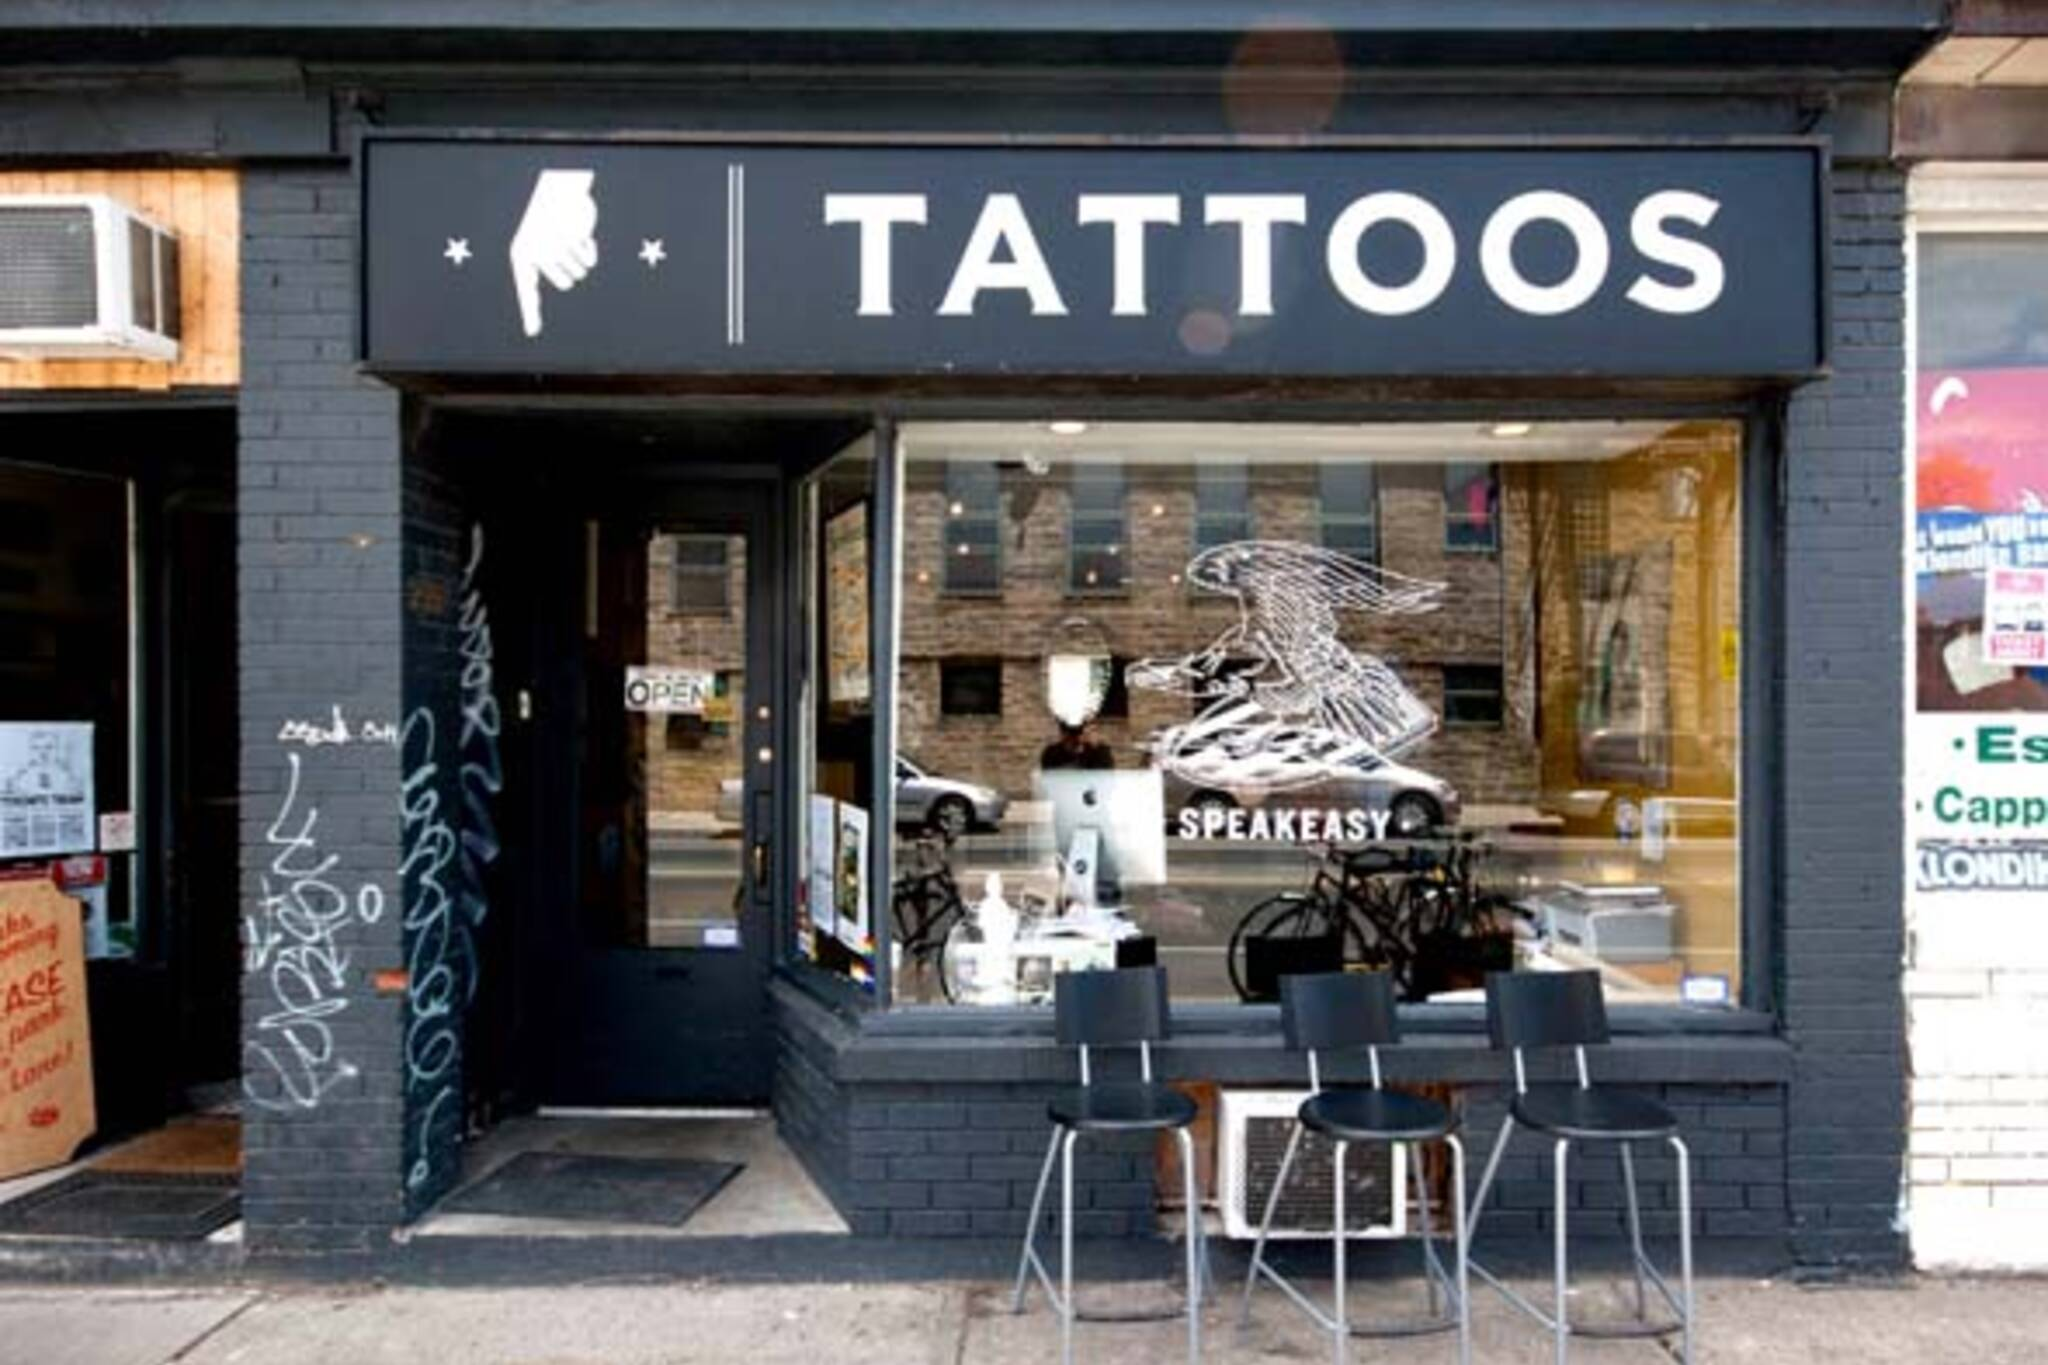 Inside harbord street 39 s tattoo shop for Norristown tattoo shops